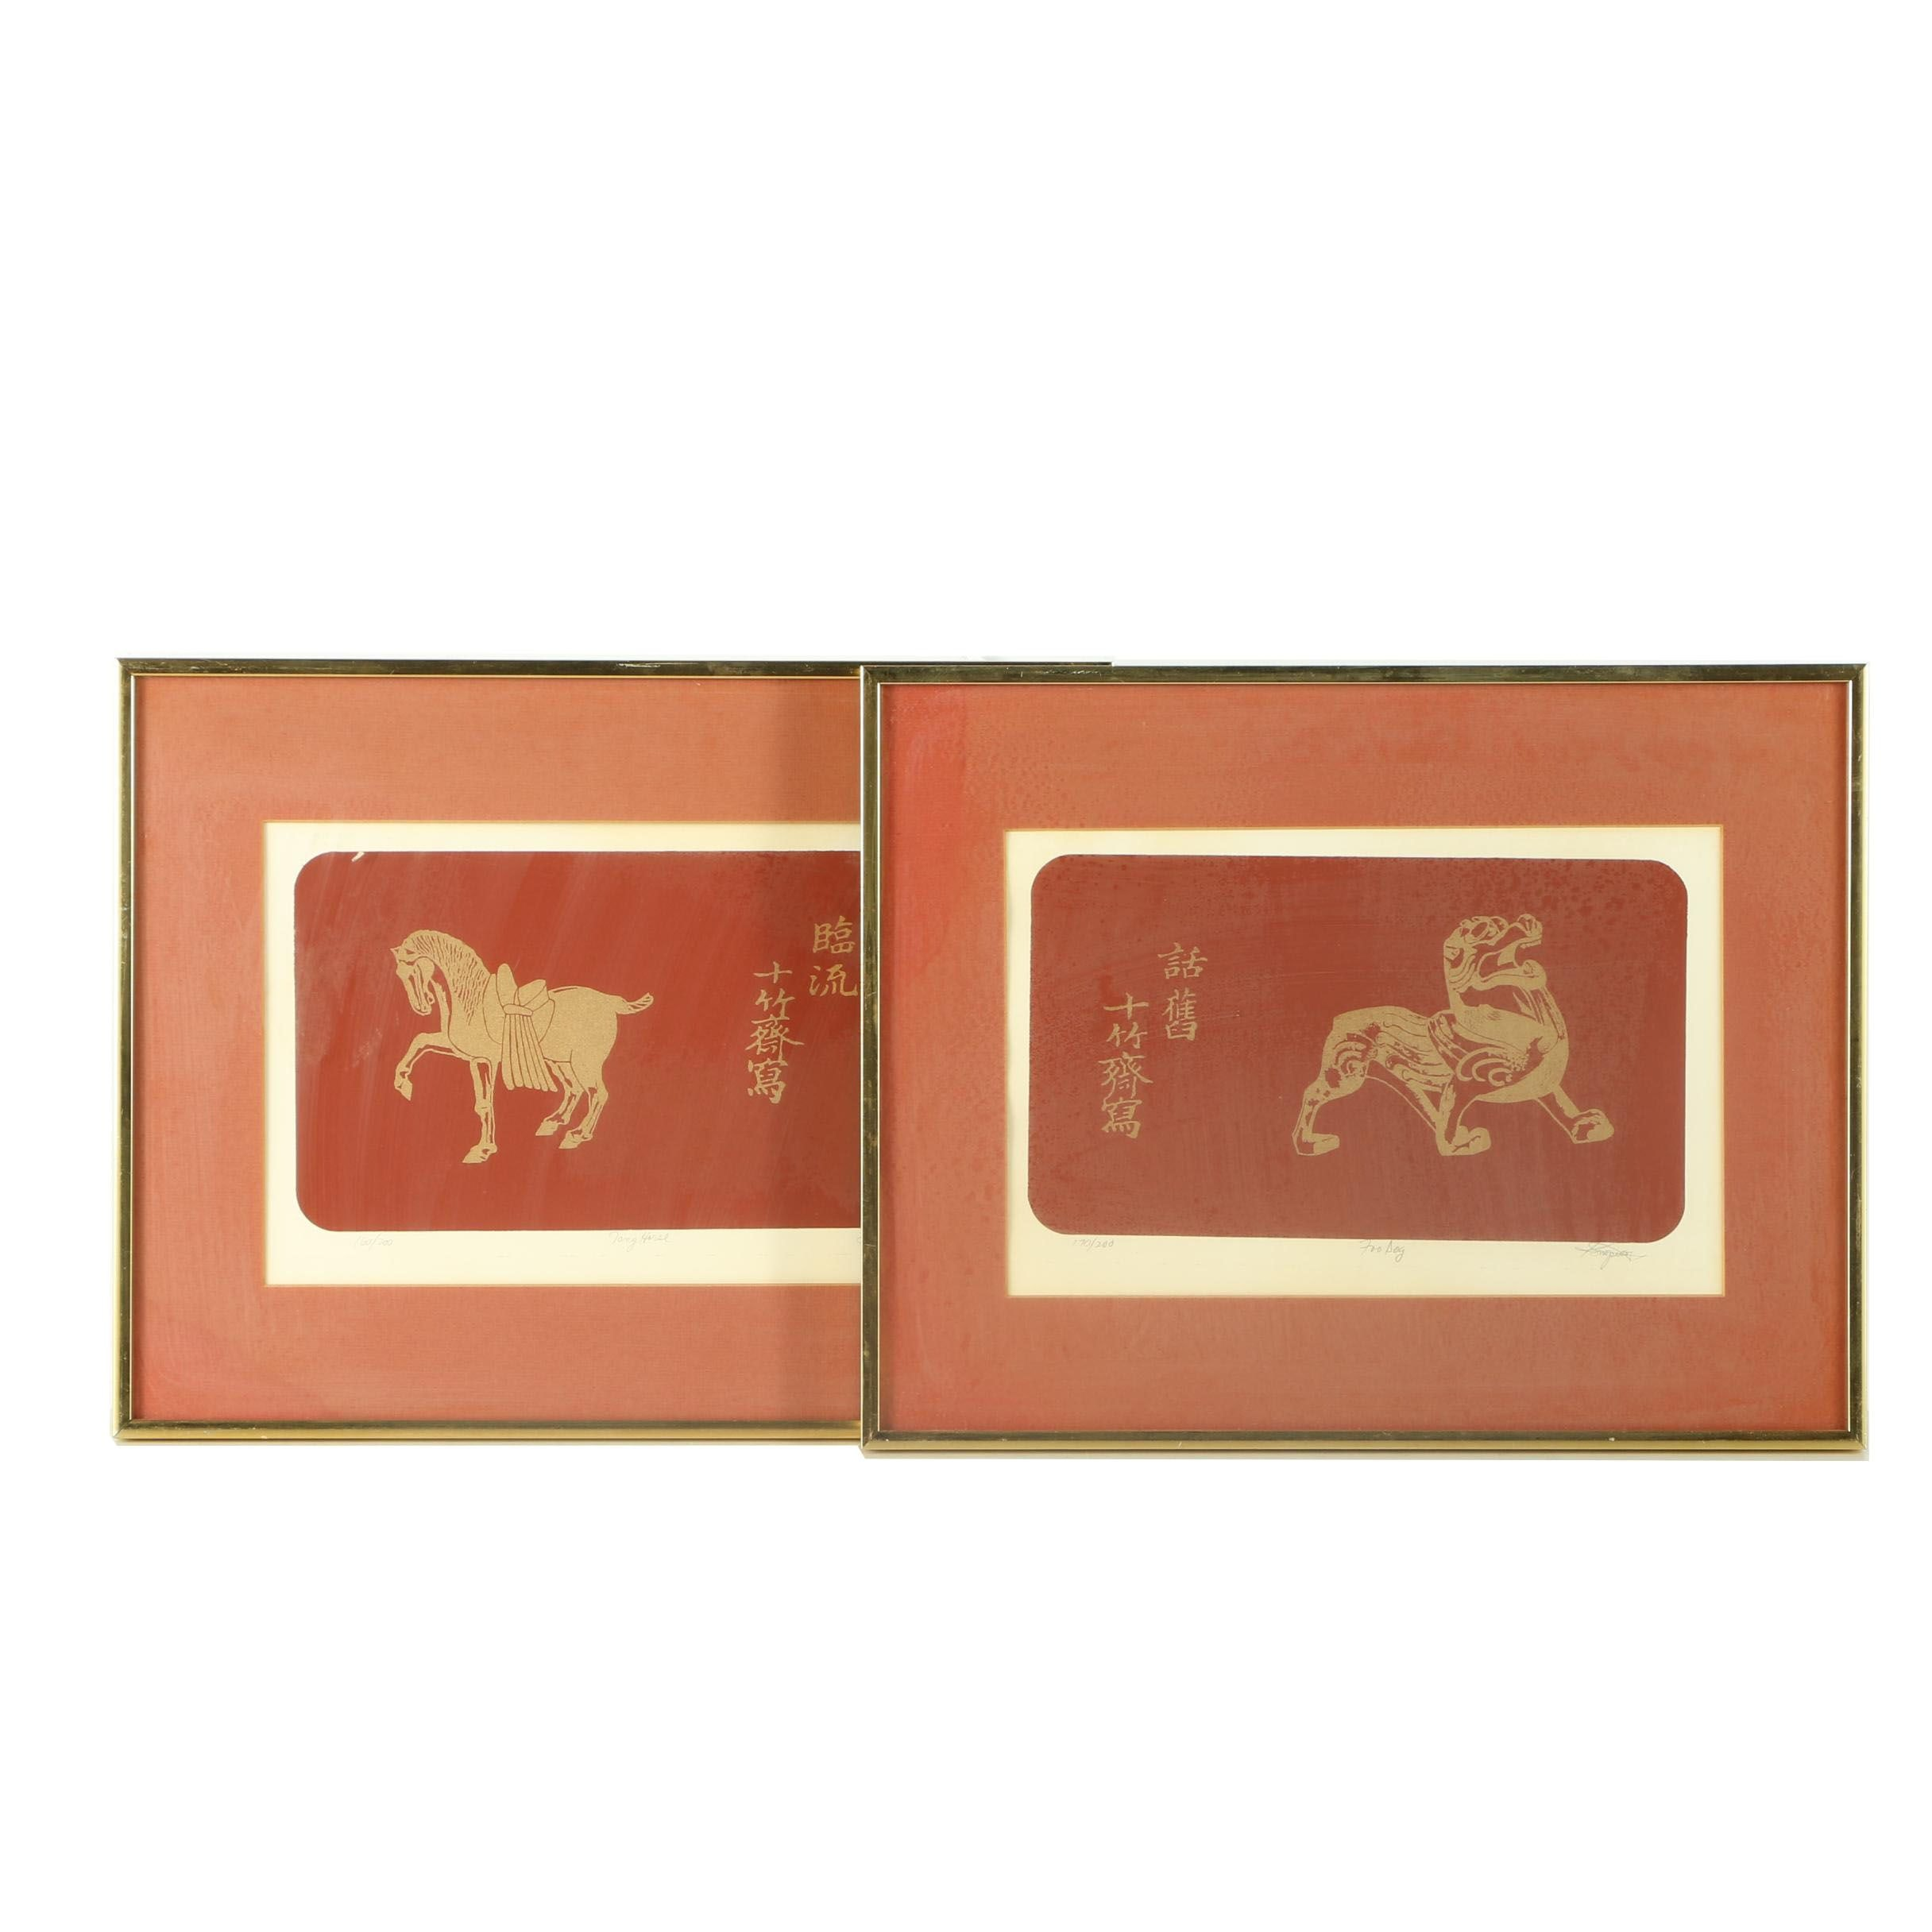 Limited Edition East Asian Inspired Serigraphs Featuring a Horse and a Lion